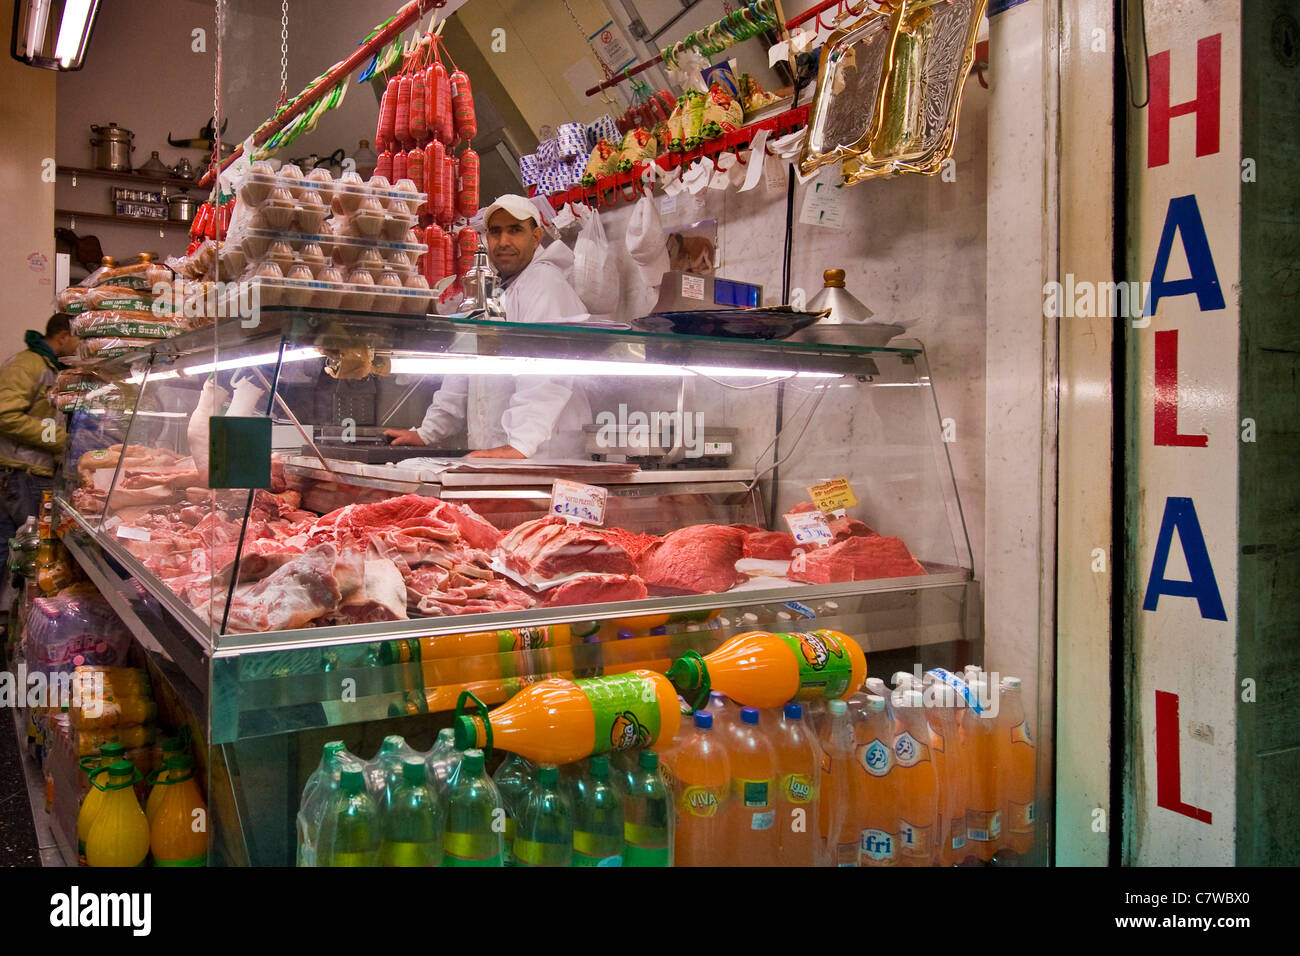 Italy, Liguria, Genoa, islamic butcher's shop - Stock Image